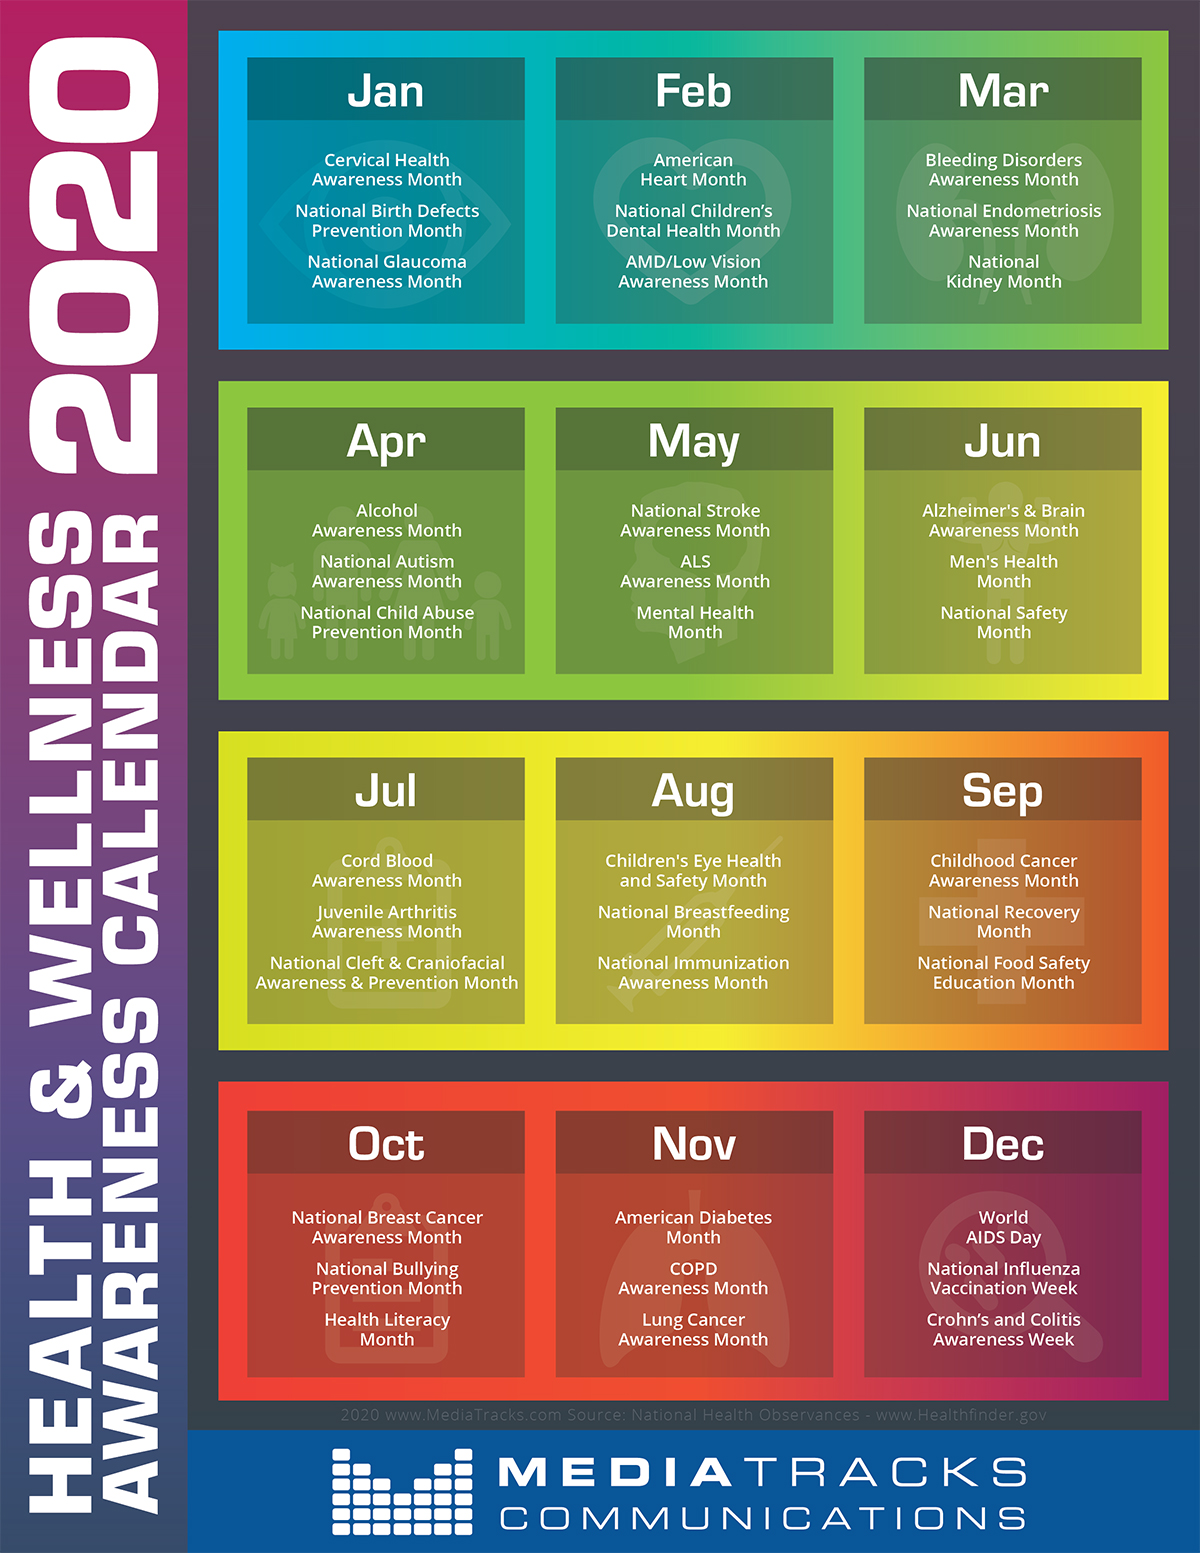 2020 Health & Wellness Awareness Calendar